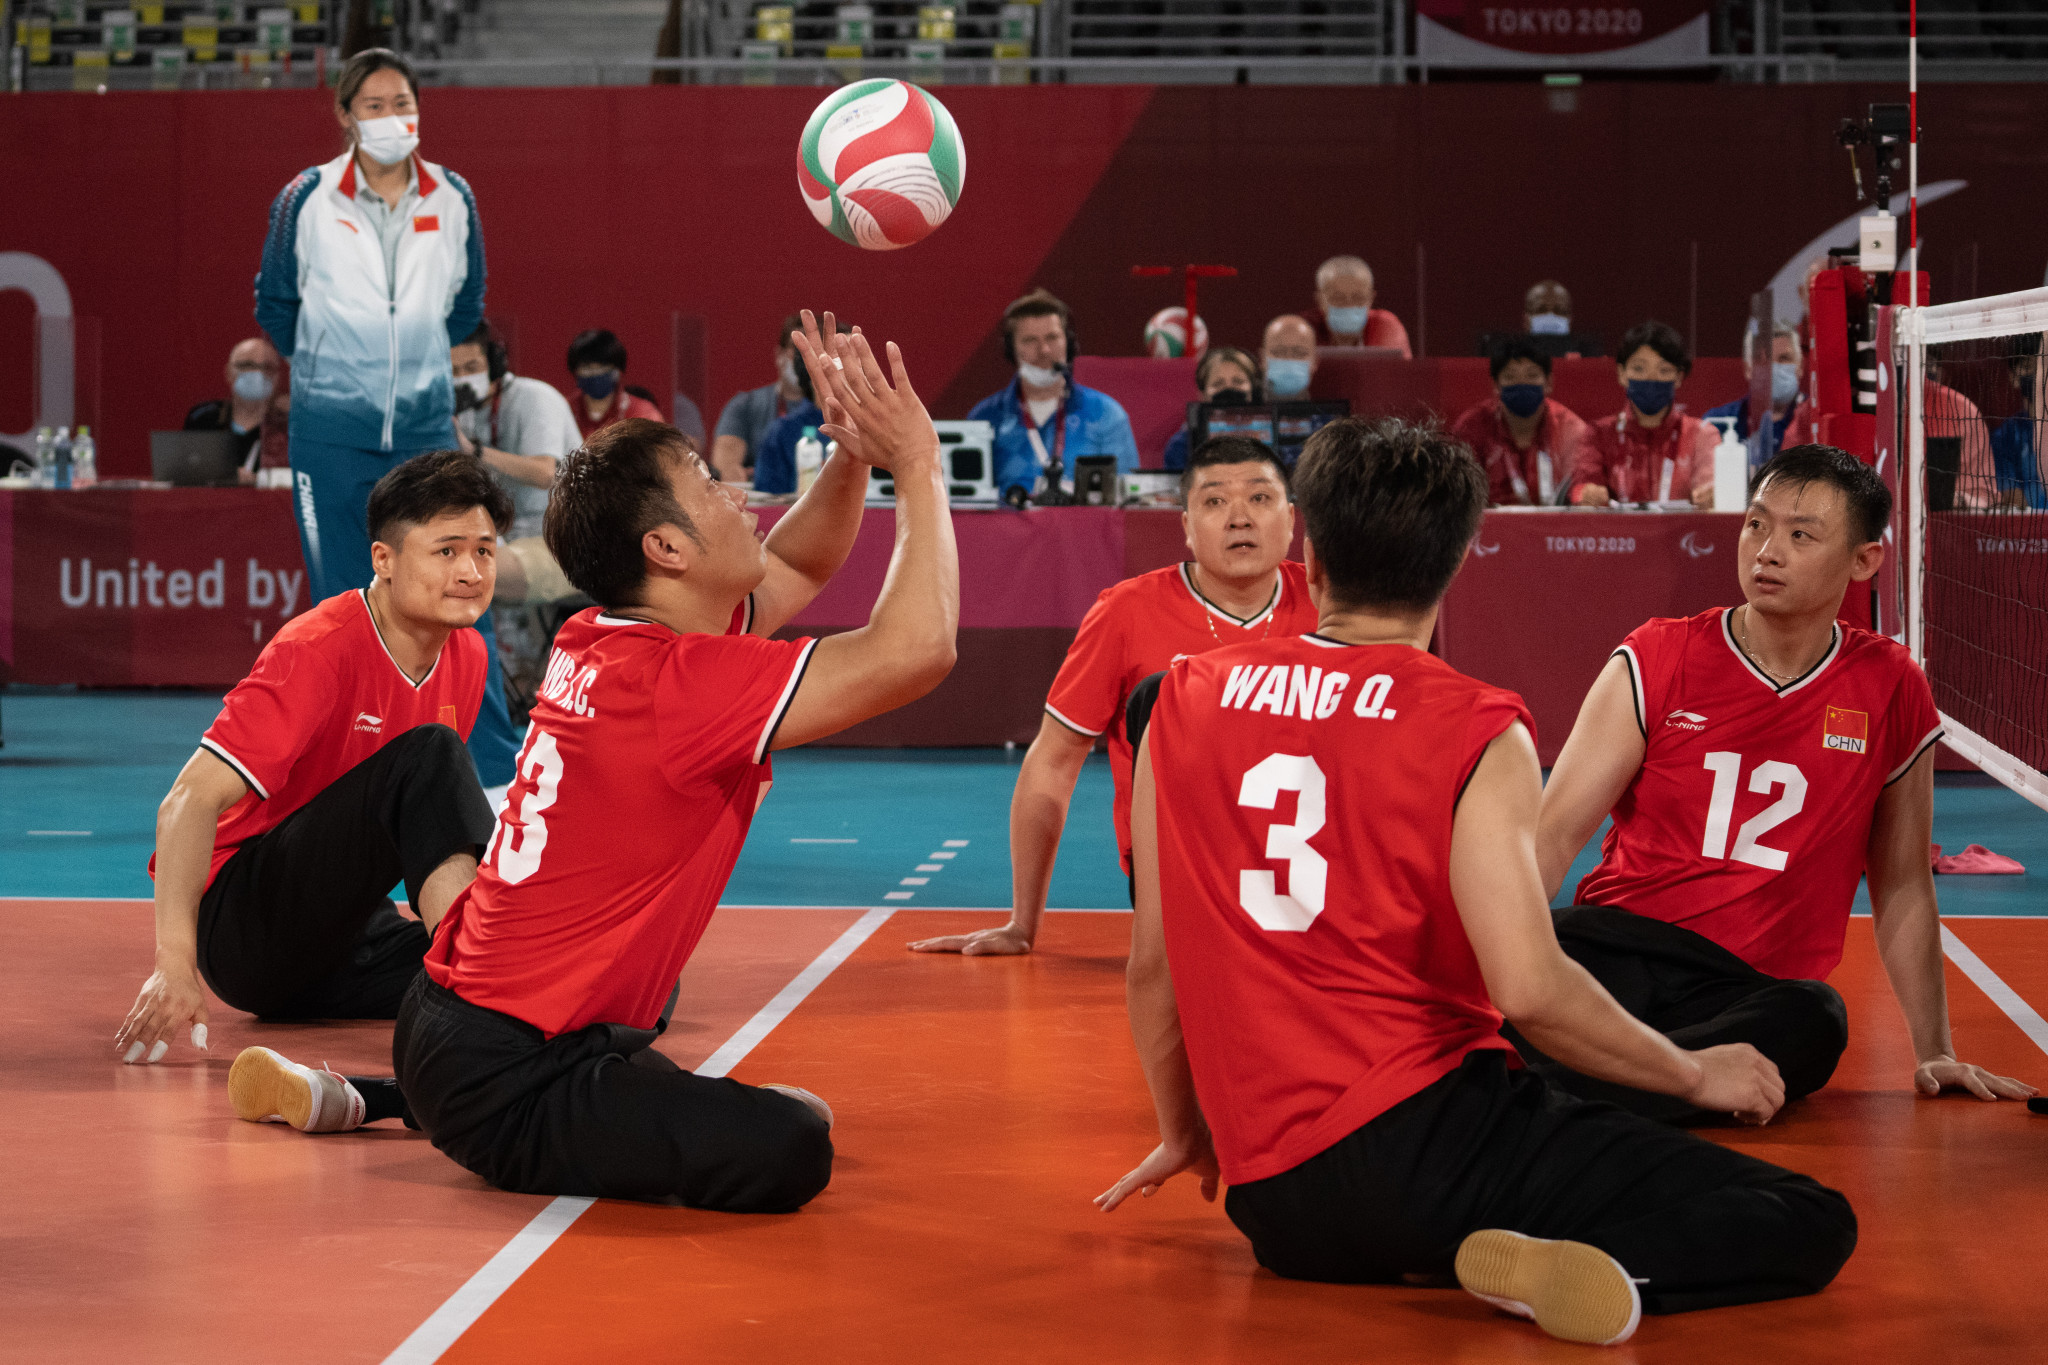 Sitting Volleyball World Cup postponed due to COVID-19 concerns